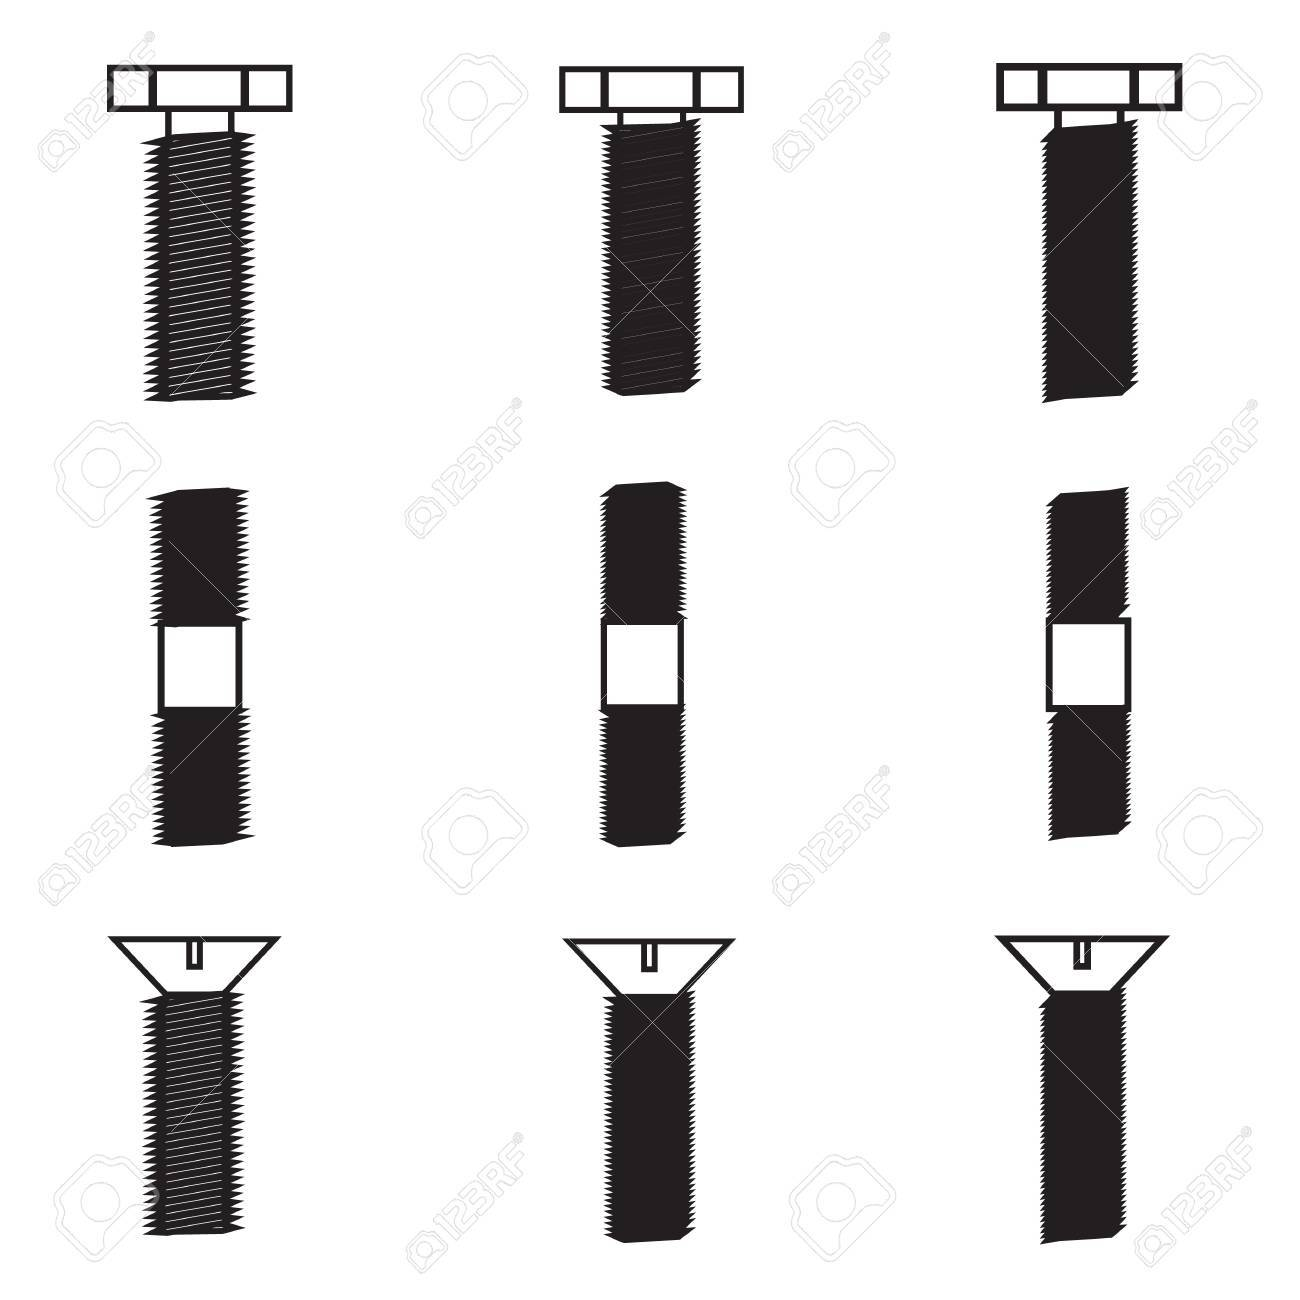 Set of screws icon Stock Vector - 21423221